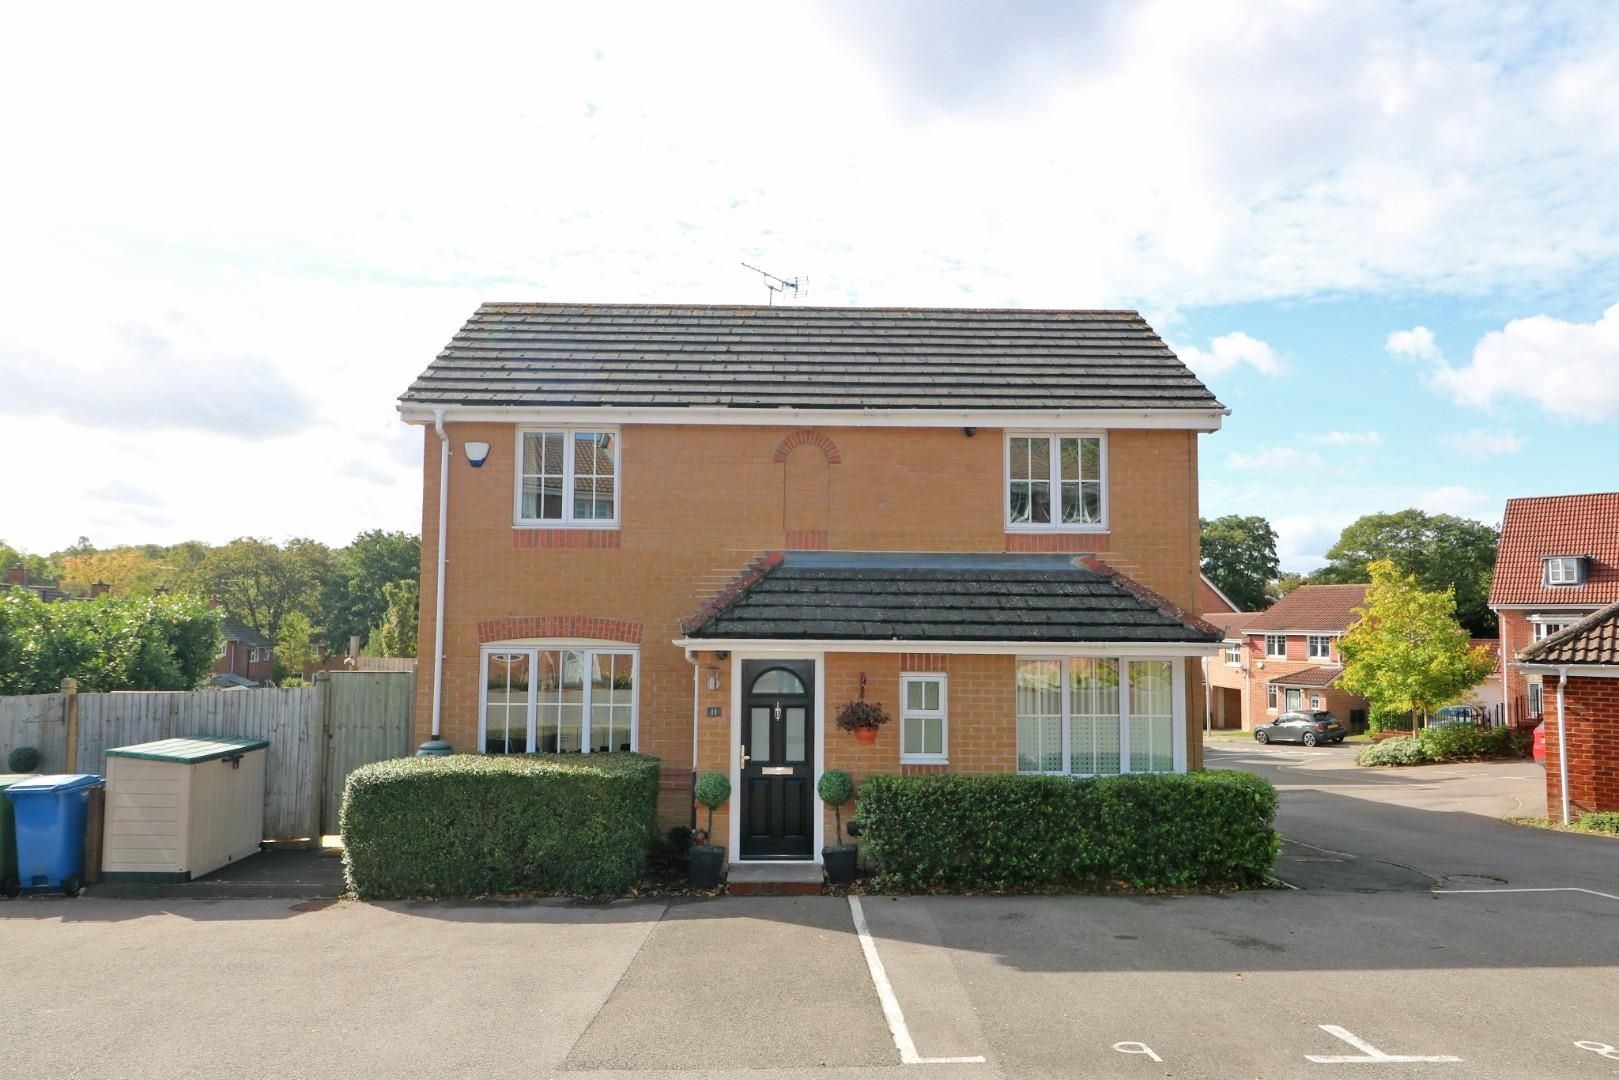 3 bed end of terrace for sale  - Property Image 1